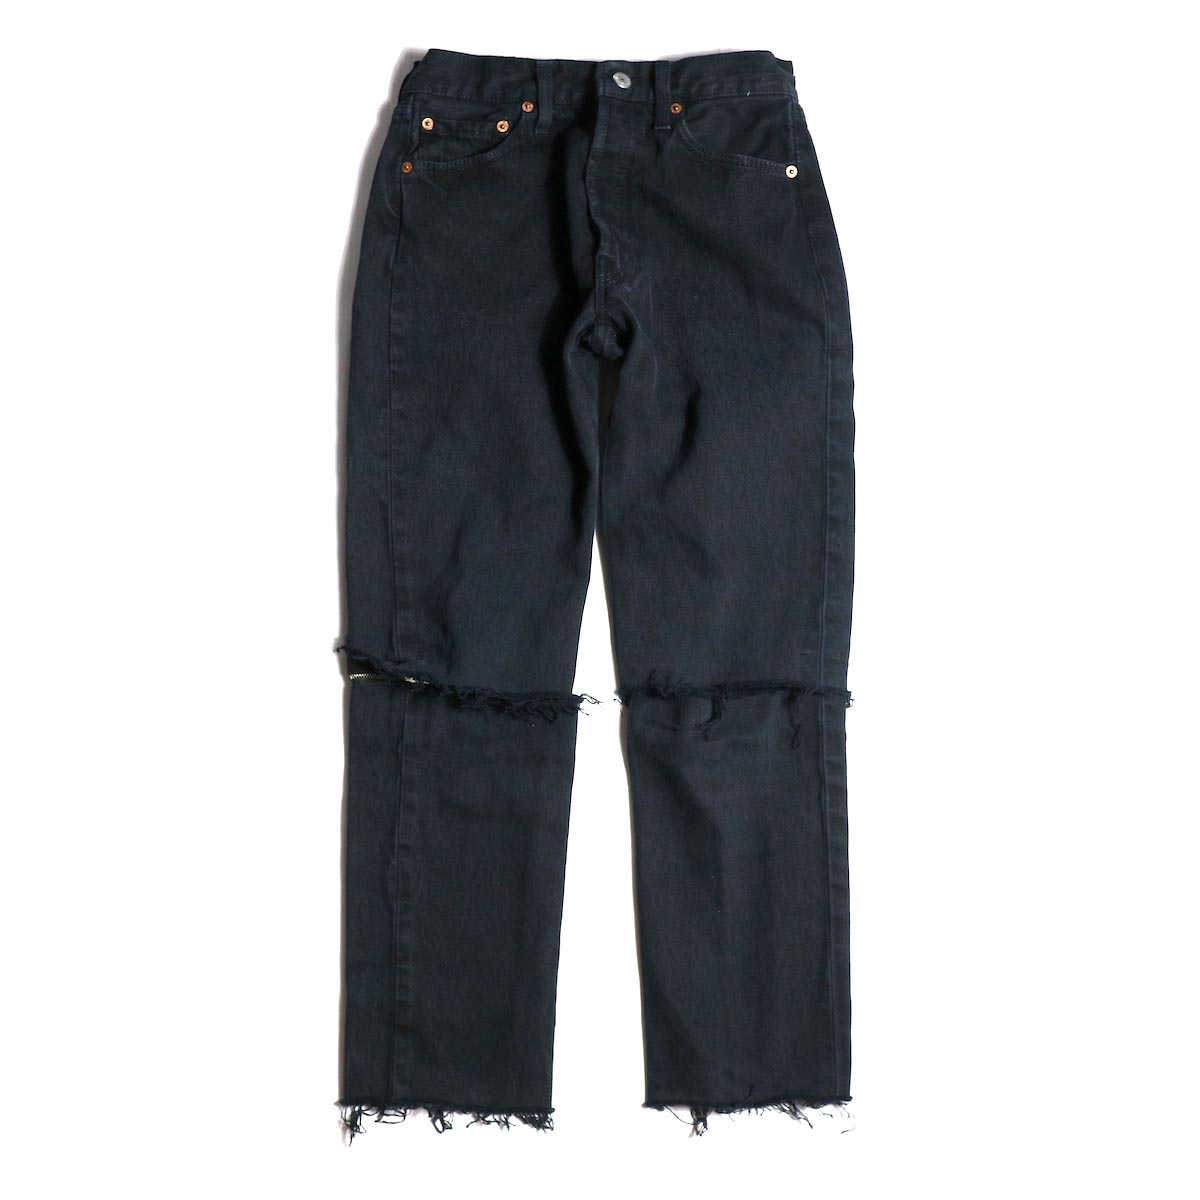 OLD PARK / 2WAY JEANS (XS size)